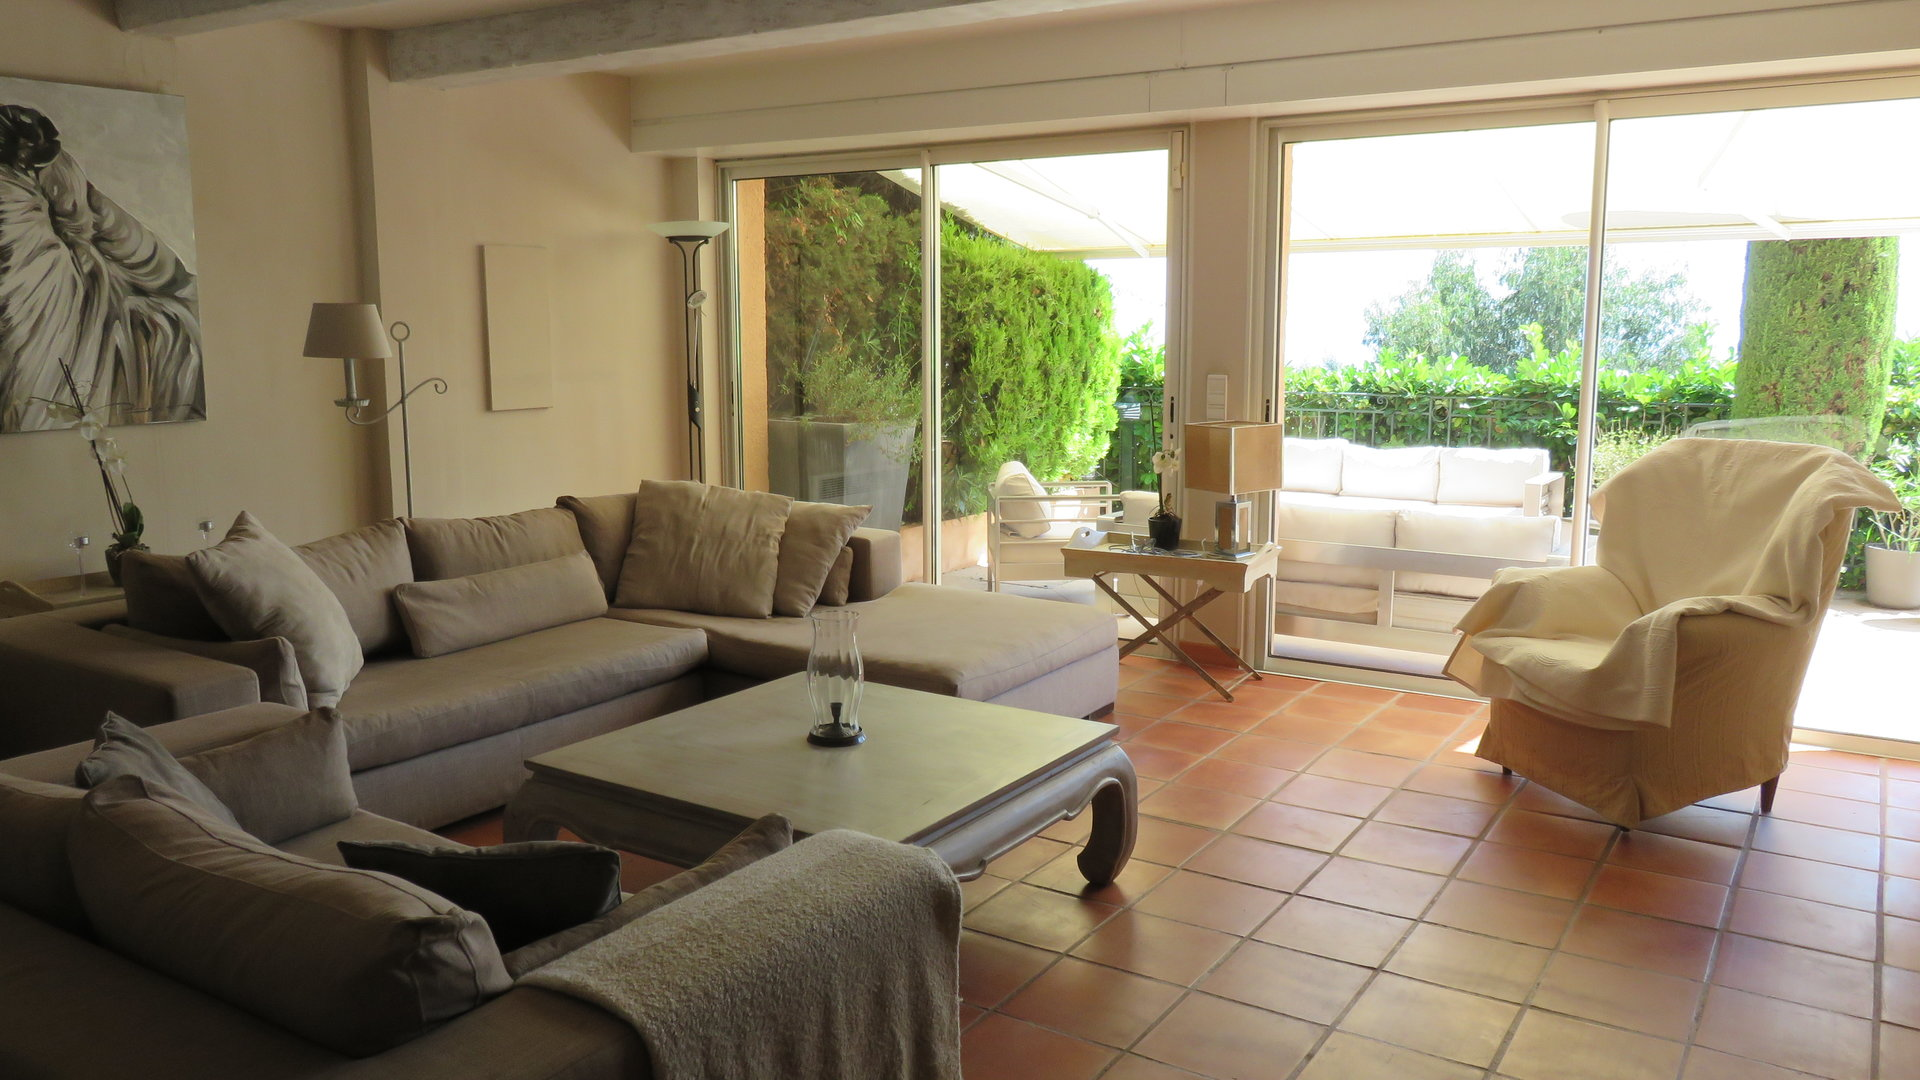 House-Apartment 4 bedrooms 153 m²